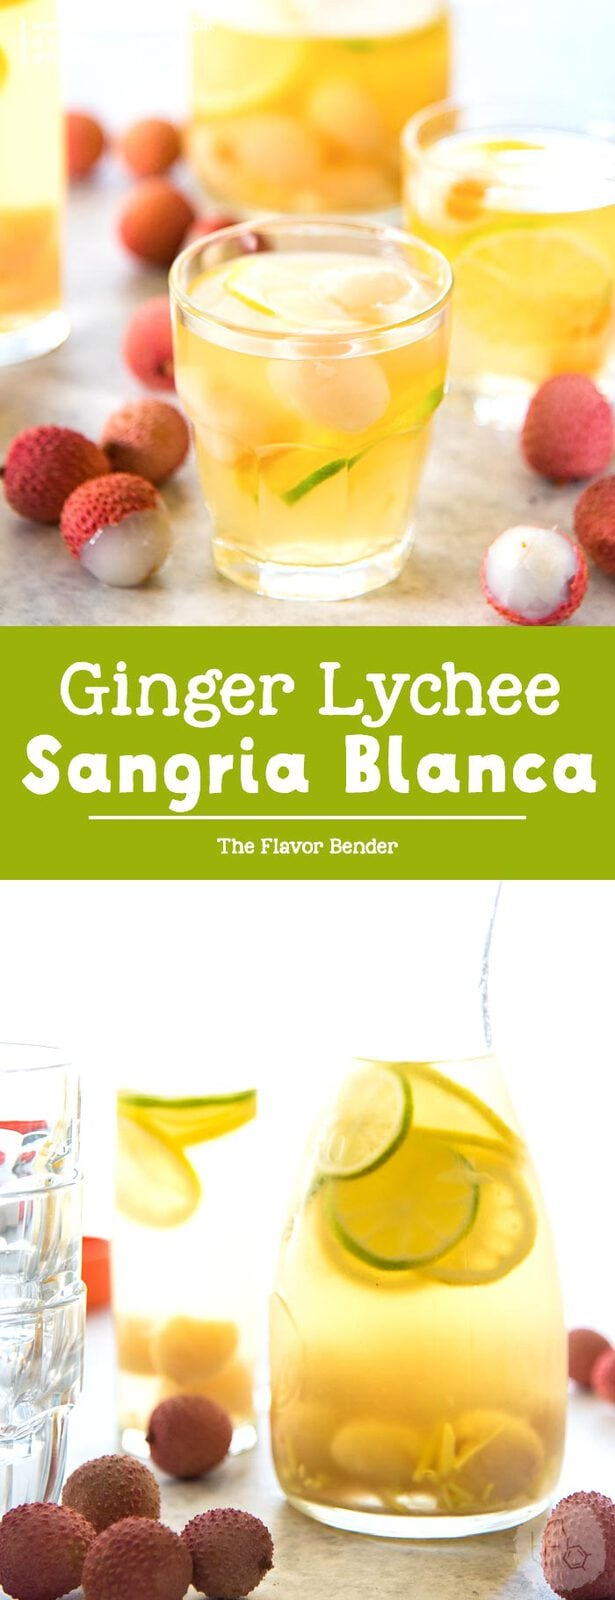 Ginger Lychee Sangria Blanca -An ice-cold, boozy Pinot grigio sangria drink with an explosion of flavors, perfect for hot summer days and evenings!